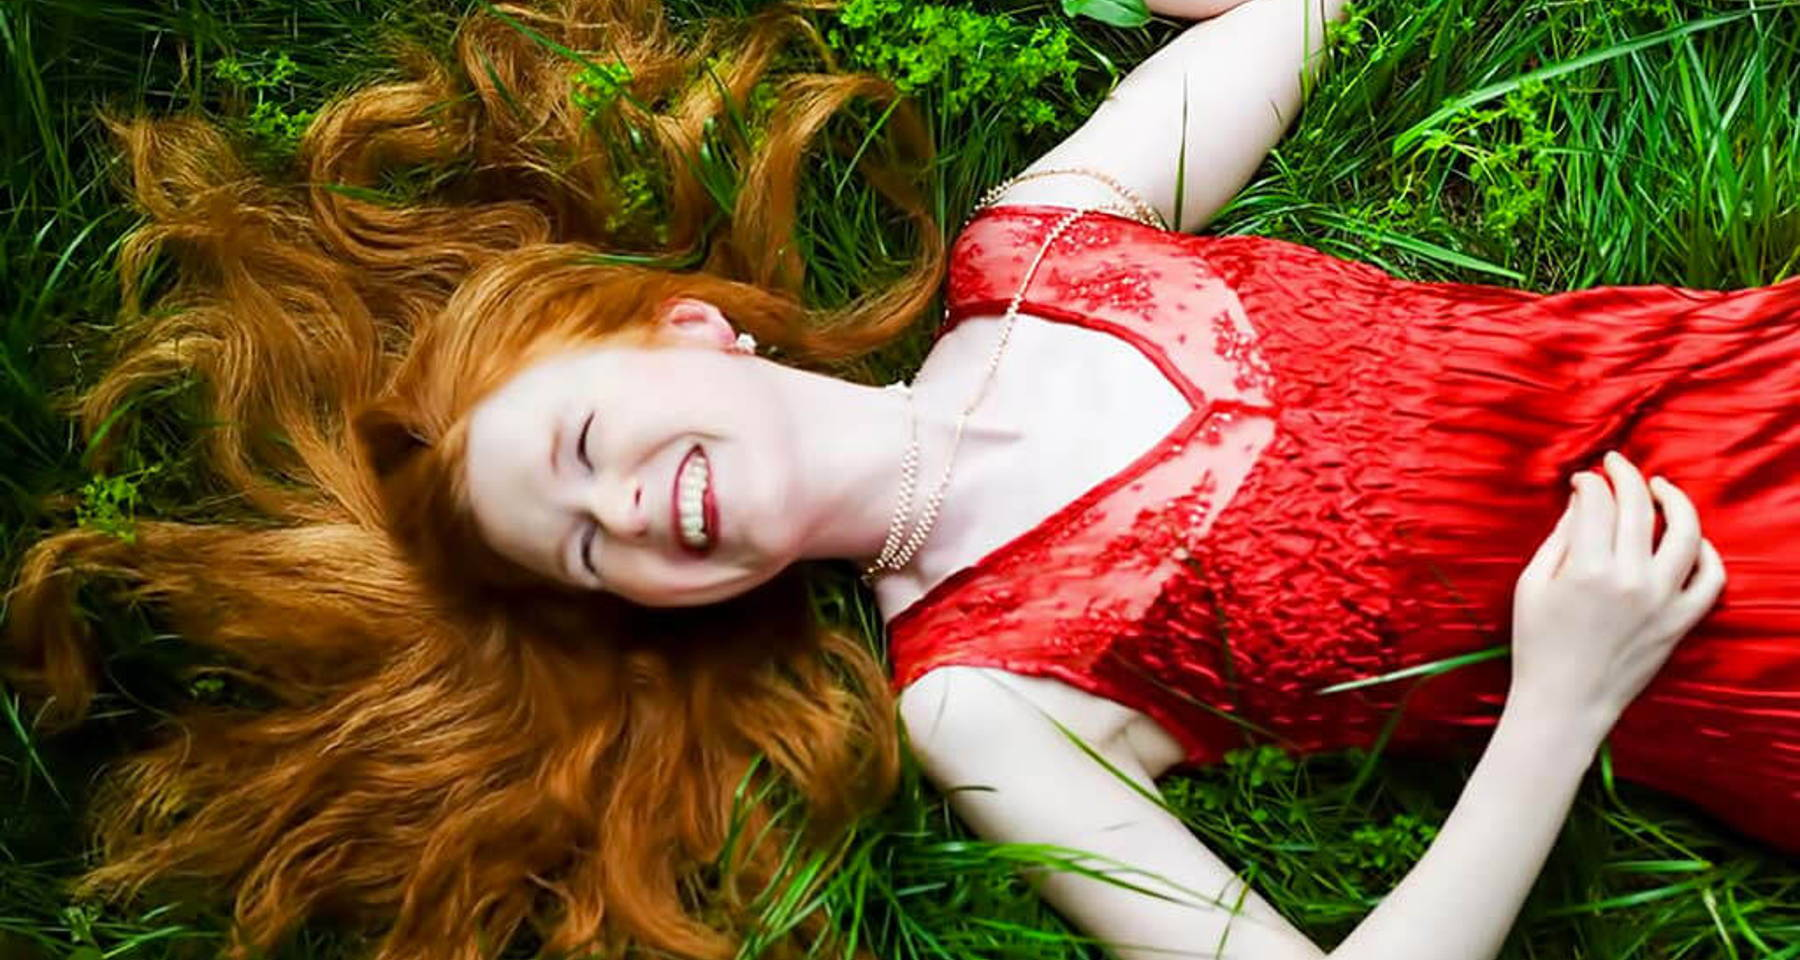 Arium Presents: At Home with Sarah Cahill